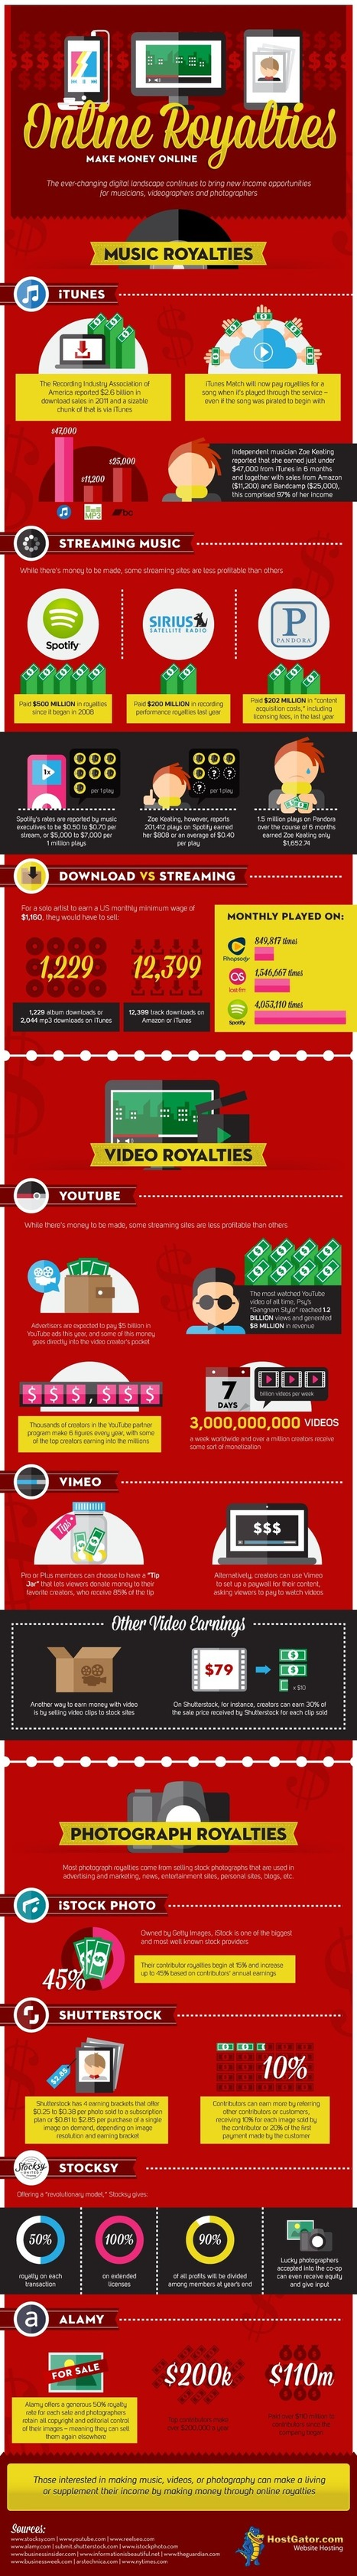 Infographic: Online Royalties, Make Money Online | HostGator Web ... | Make Hits on your Blog by Cococute Life | Scoop.it